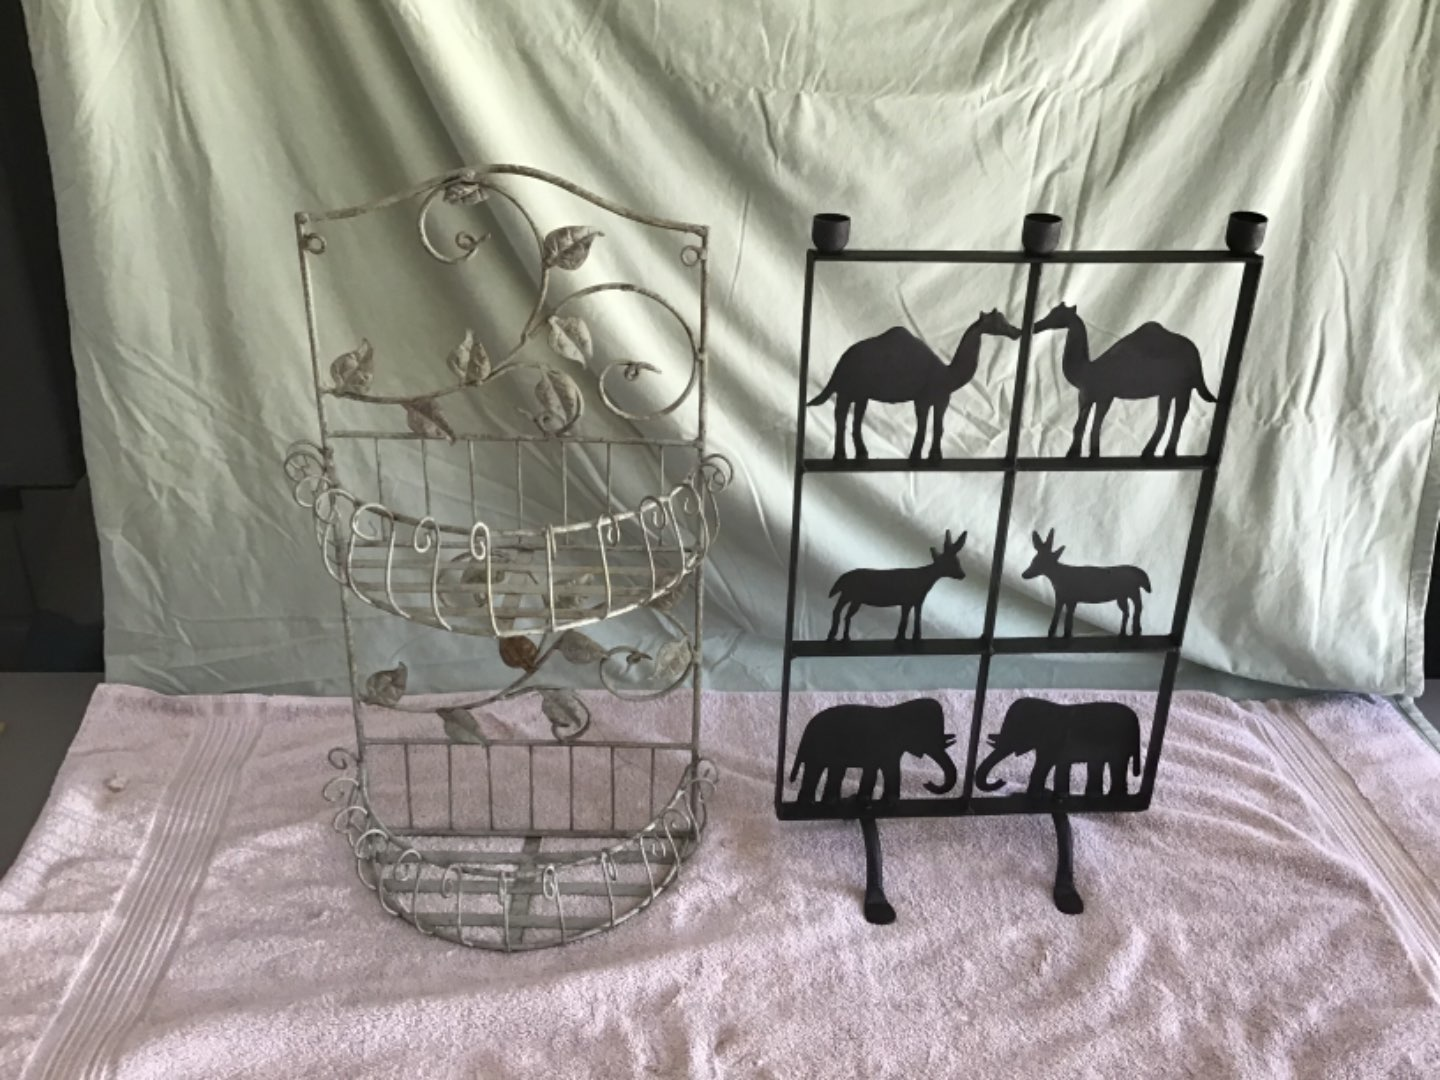 Lot # 241 Two Nice Metal Ornamental Wall-Hanger & Free-Standing Pieces - Animals Candle Holder, & Plant Holder